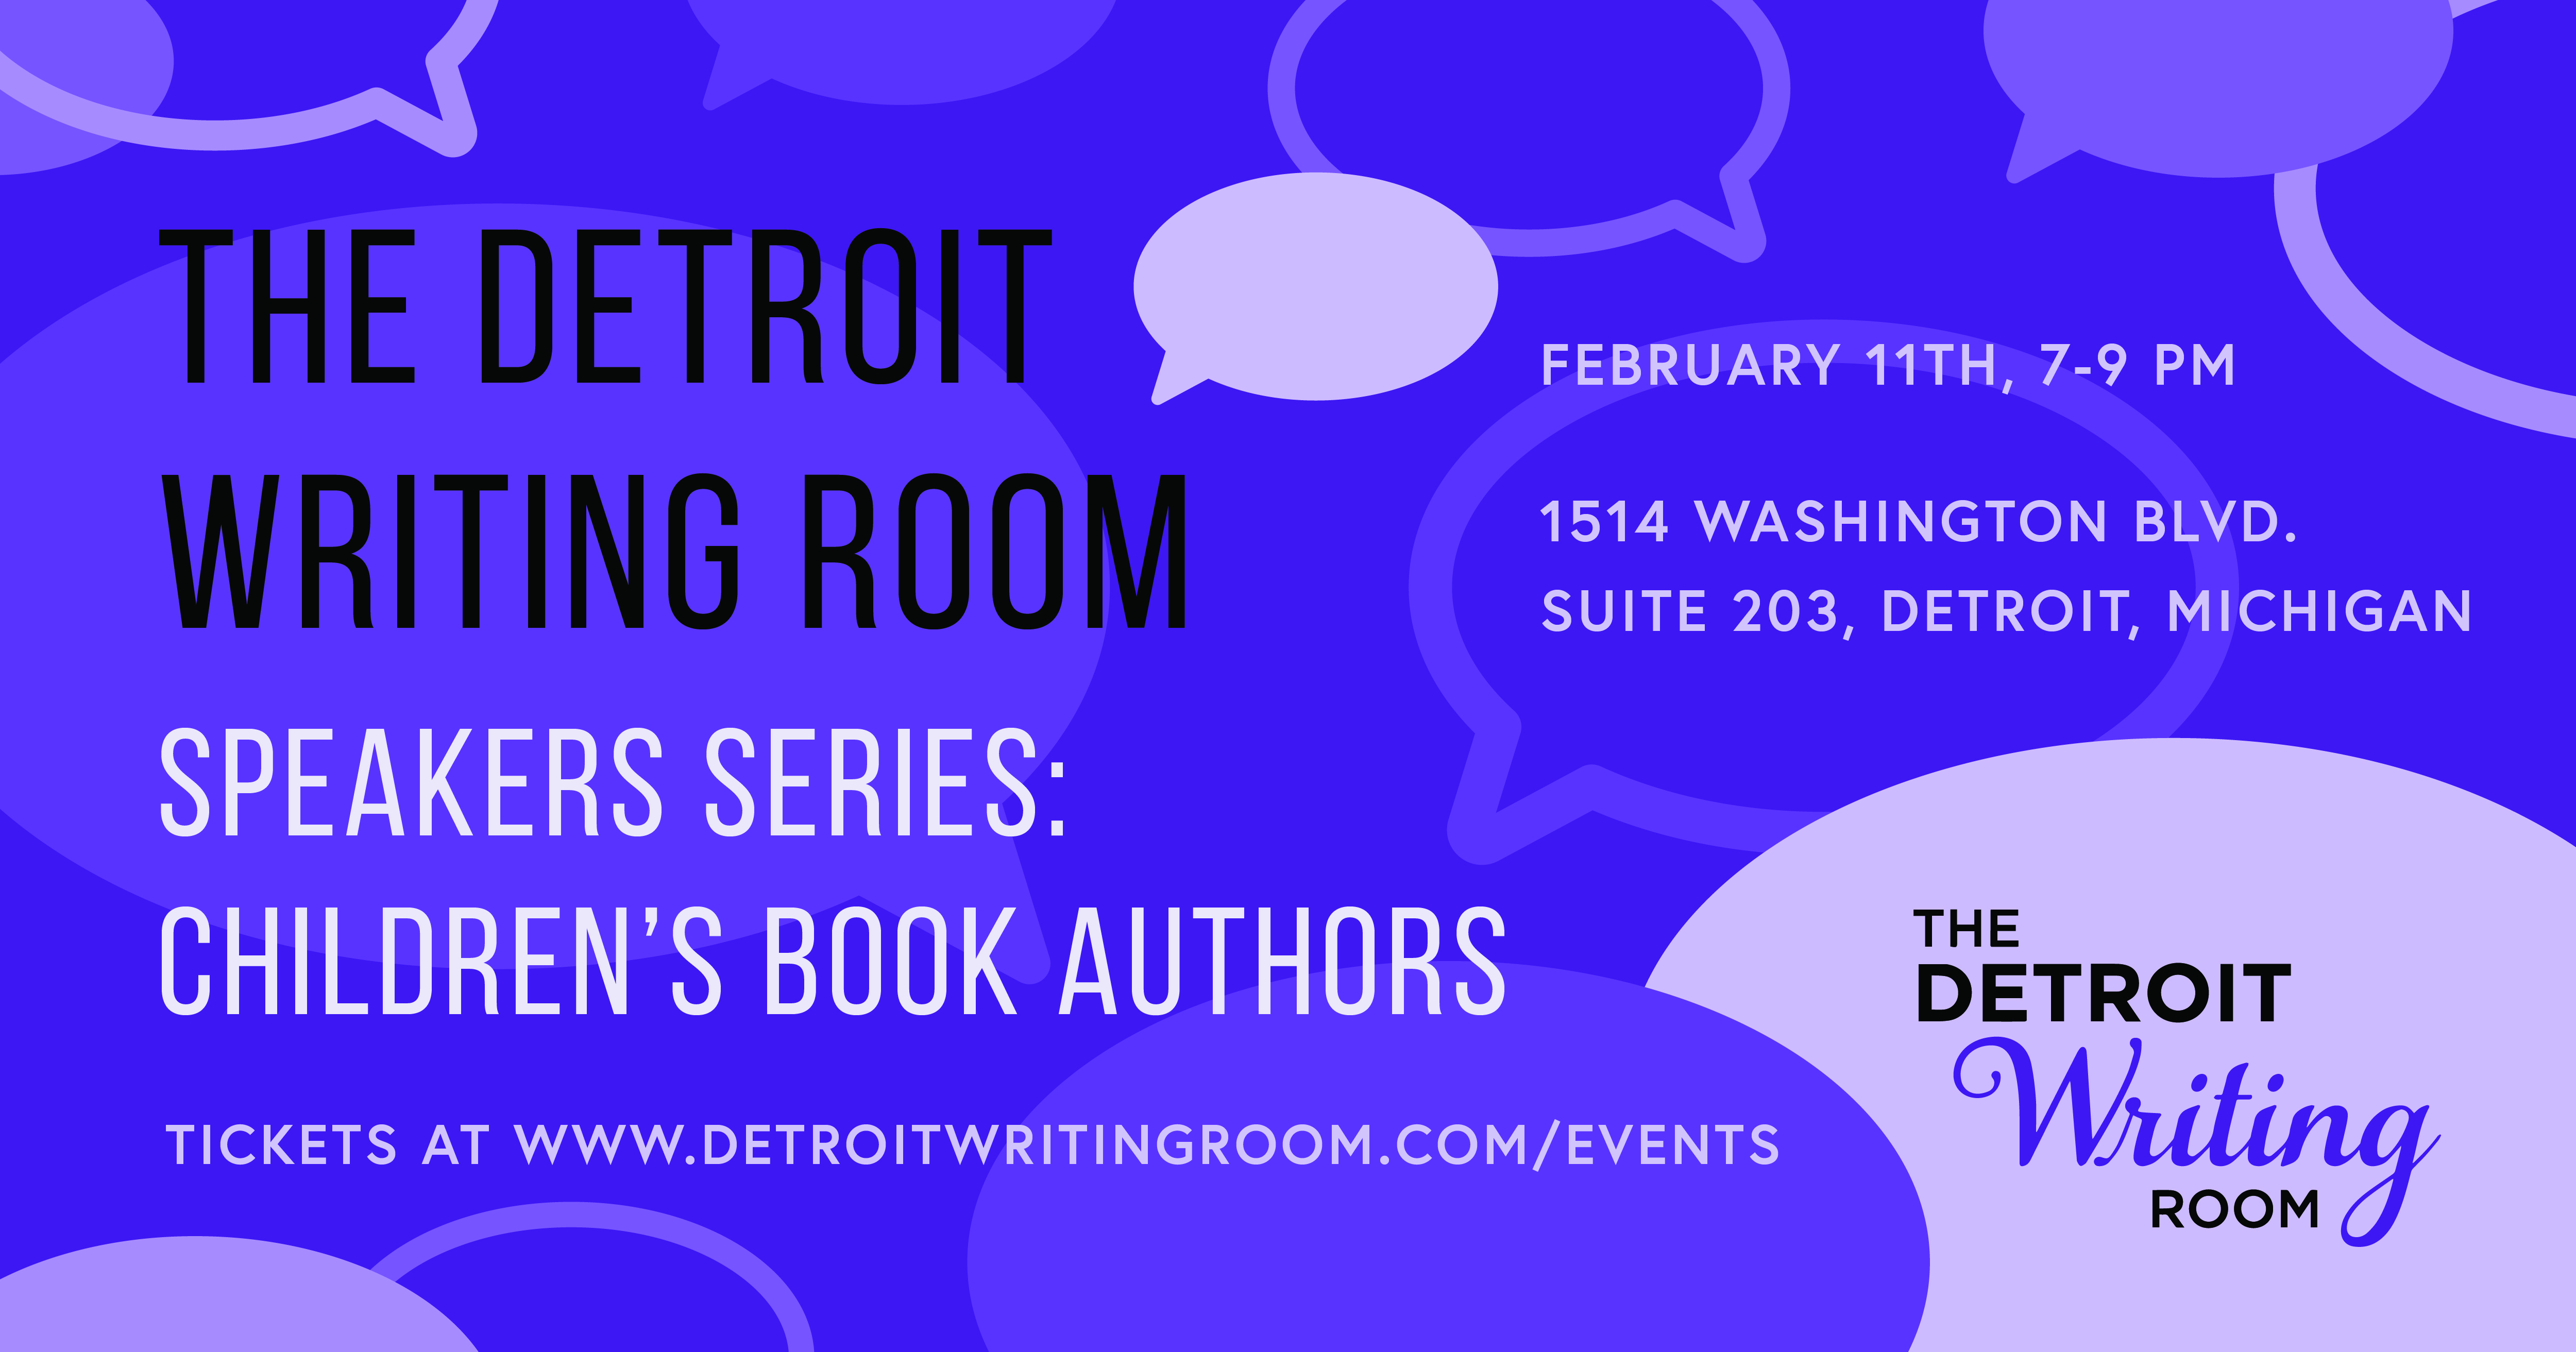 Meet top children's book authors and illustrators at The Detroit Writing Room's Speaker's Series on Feb. 11. About this Event: Have an idea for a children's book, but don't know where to start? Or you're about to publish a storybook and could use some publicity advice from children's lit authors who've been in your shoes? Join us on Feb. 11 from 7-9 p.m. for our second Detroit Writing Room Speakers Series featuring Michigan children's authors and illustrators! Maria Dismondy, Jean Alicia Elster, Amy Nielander, Lisa Rose,David Small and Sarah Stewartwill share their publishing journeys as children's book authors as well as tips for aspiring writers and illustrators. The talk will be moderated by Channel 4 News anchor Devin Scillian, who's authored 19 children's books! Enjoy a relaxing evening with drinks, meet-and-greet with the panelists and get signed copies of their children's books! This event is for ages 21 and older. A special thank you to the Society of Children's Book Writers and Illustrators Michigan chapter for partnering on this event! CLICK HERE TO REGISTER!